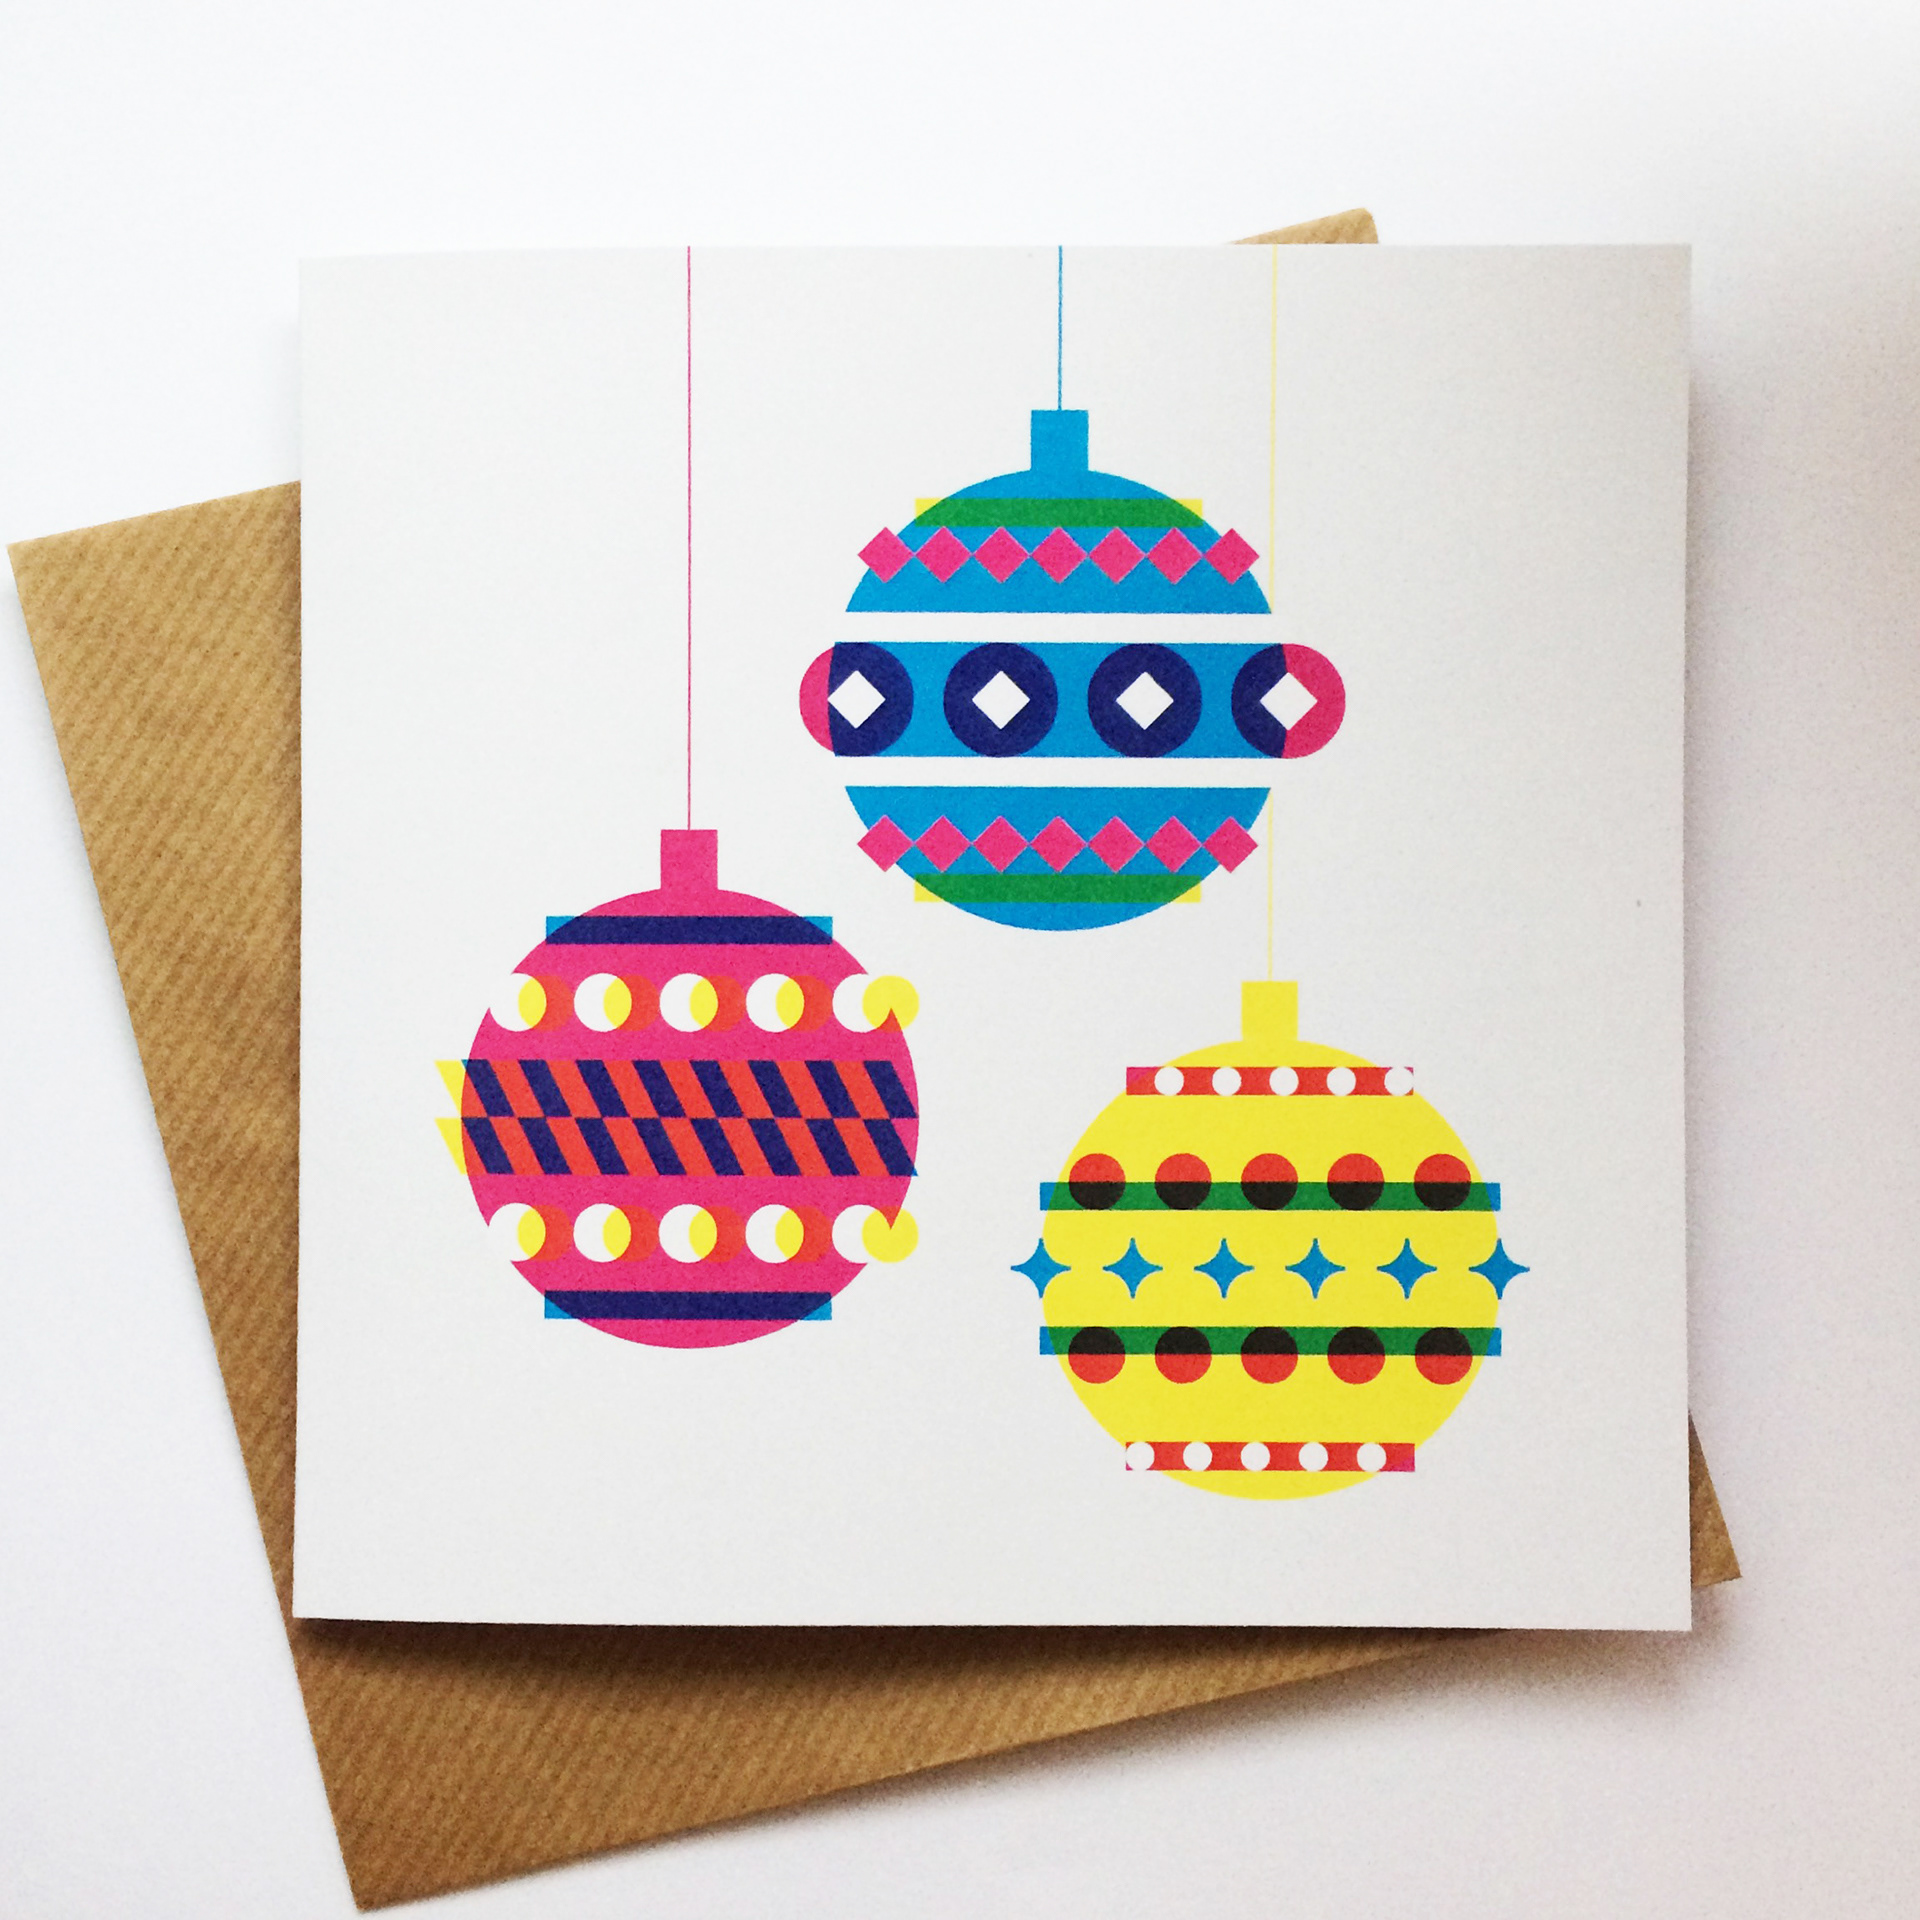 cmyk christmas card designs available to buy from the form shop or for wholesale purchase - Where To Buy Christmas Cards